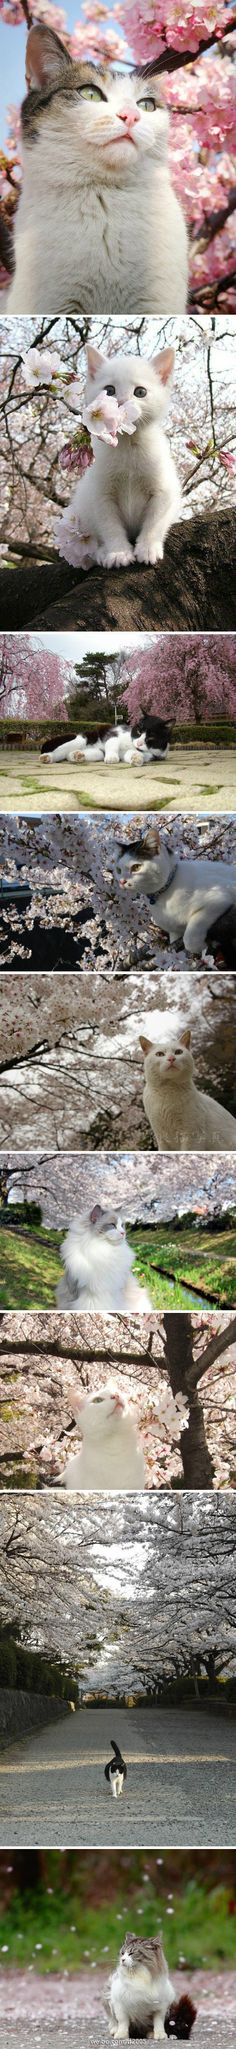 Kitties and cherry blossoms